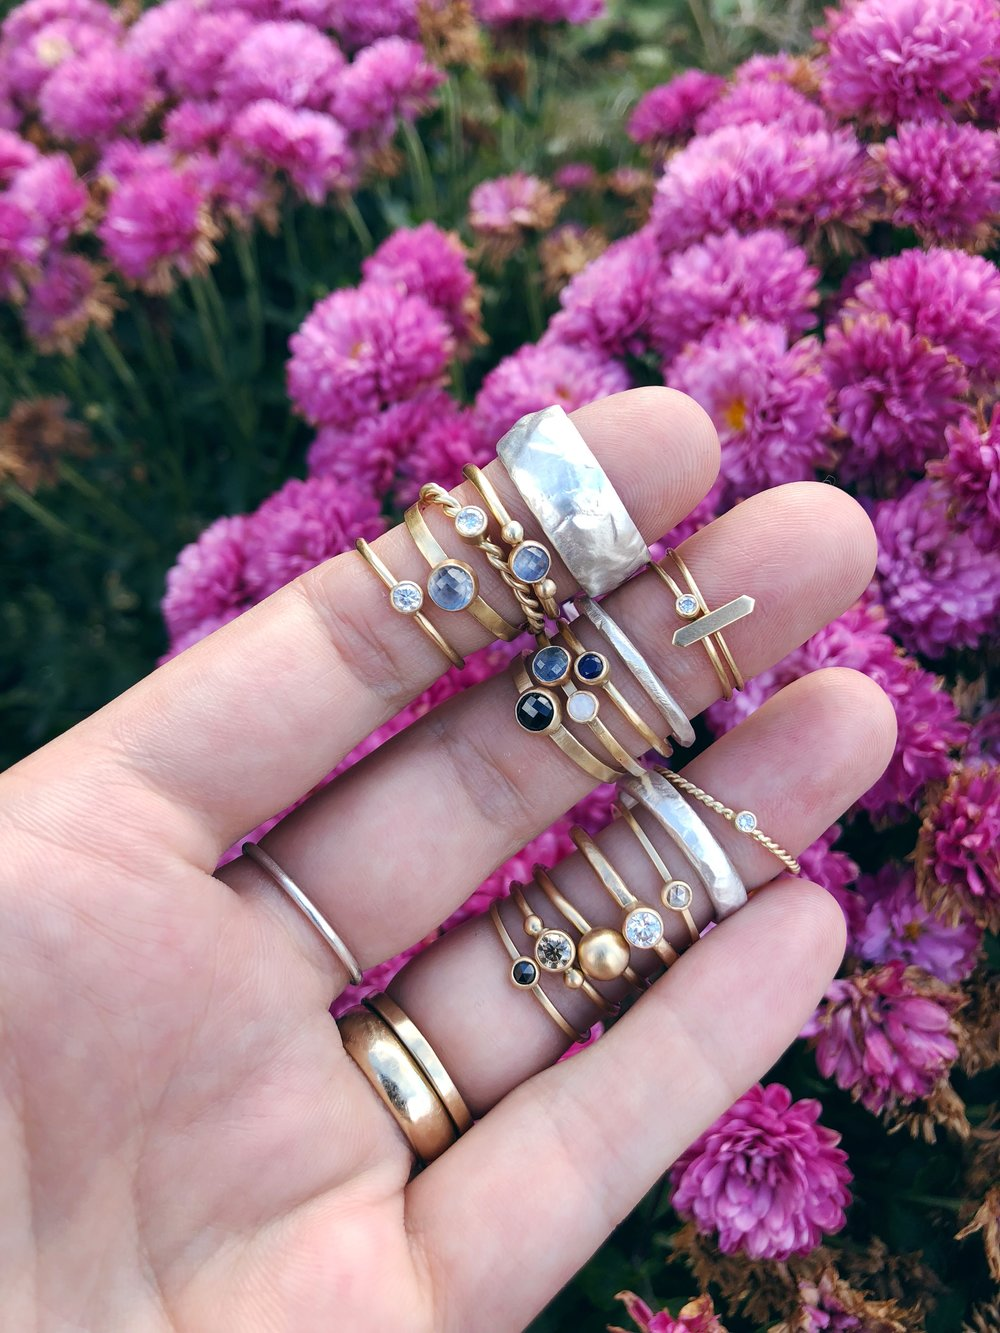 October: The best of trunk shows and  all the stacking rings  at Cupcake Clothing in Santa Fe